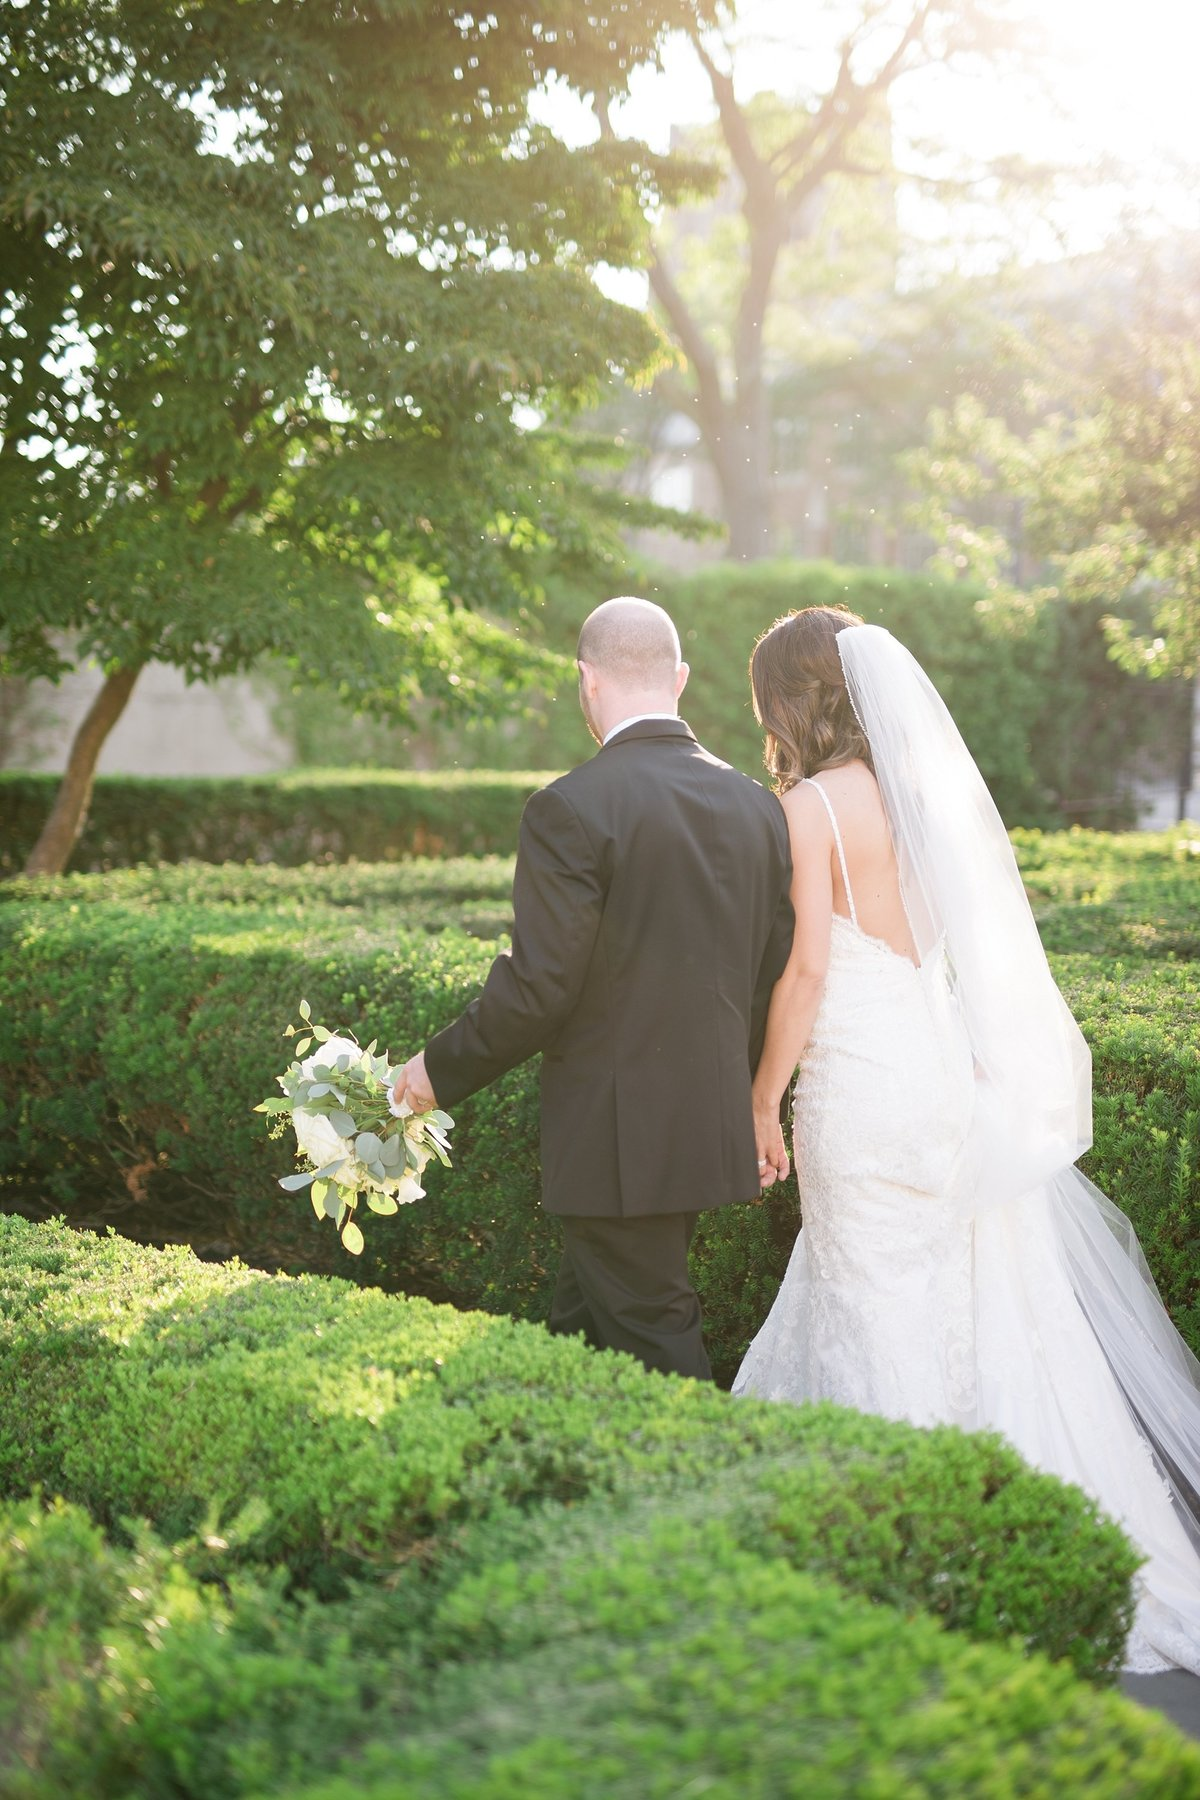 Shuster-Wedding-Grosse-Pointe-War-Memorial-Breanne-Rochelle-Photography110